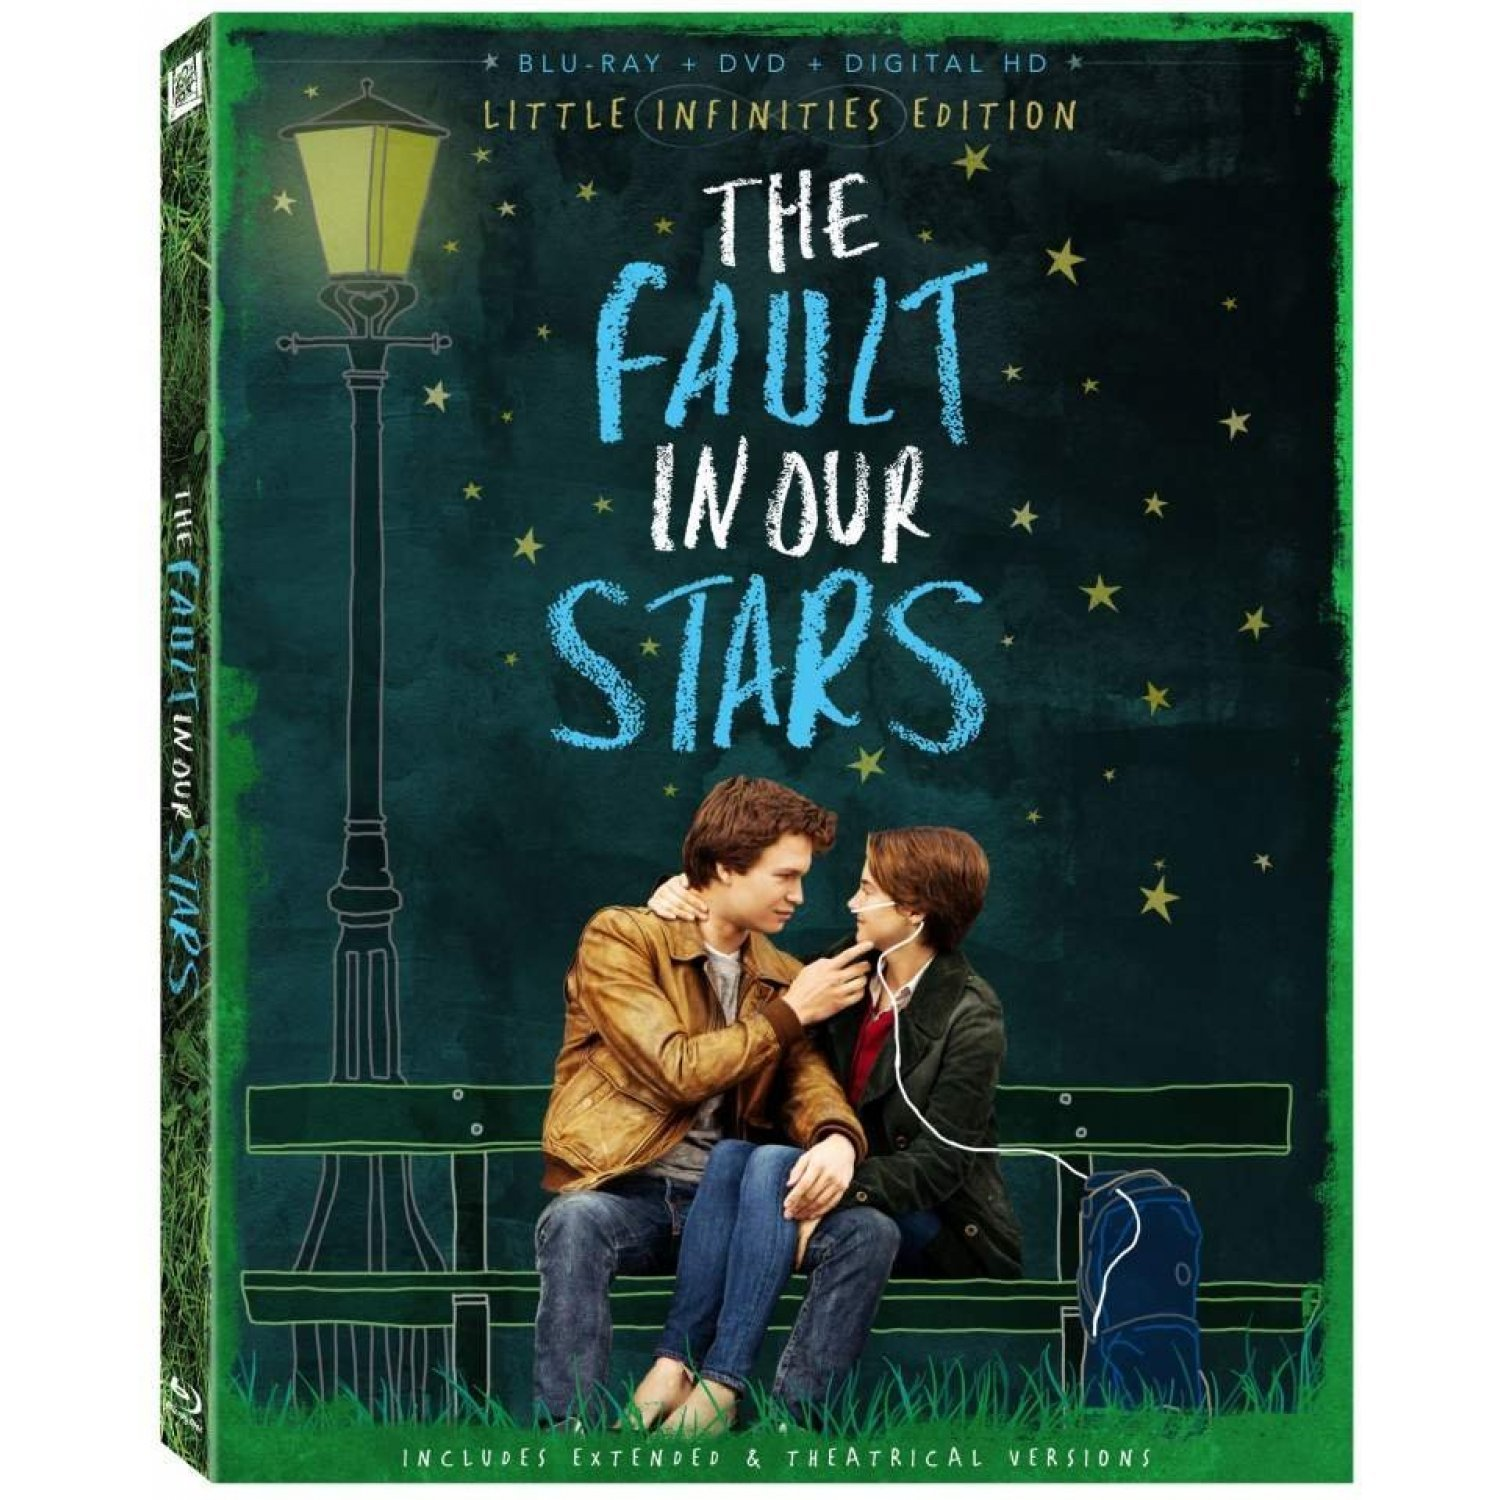 """the fault in our stars a story of little infinities essay In less than a month, the world's most anticipated love story from the worldwide tearjerker book of the same title – """"the fault in our stars"""" will final."""